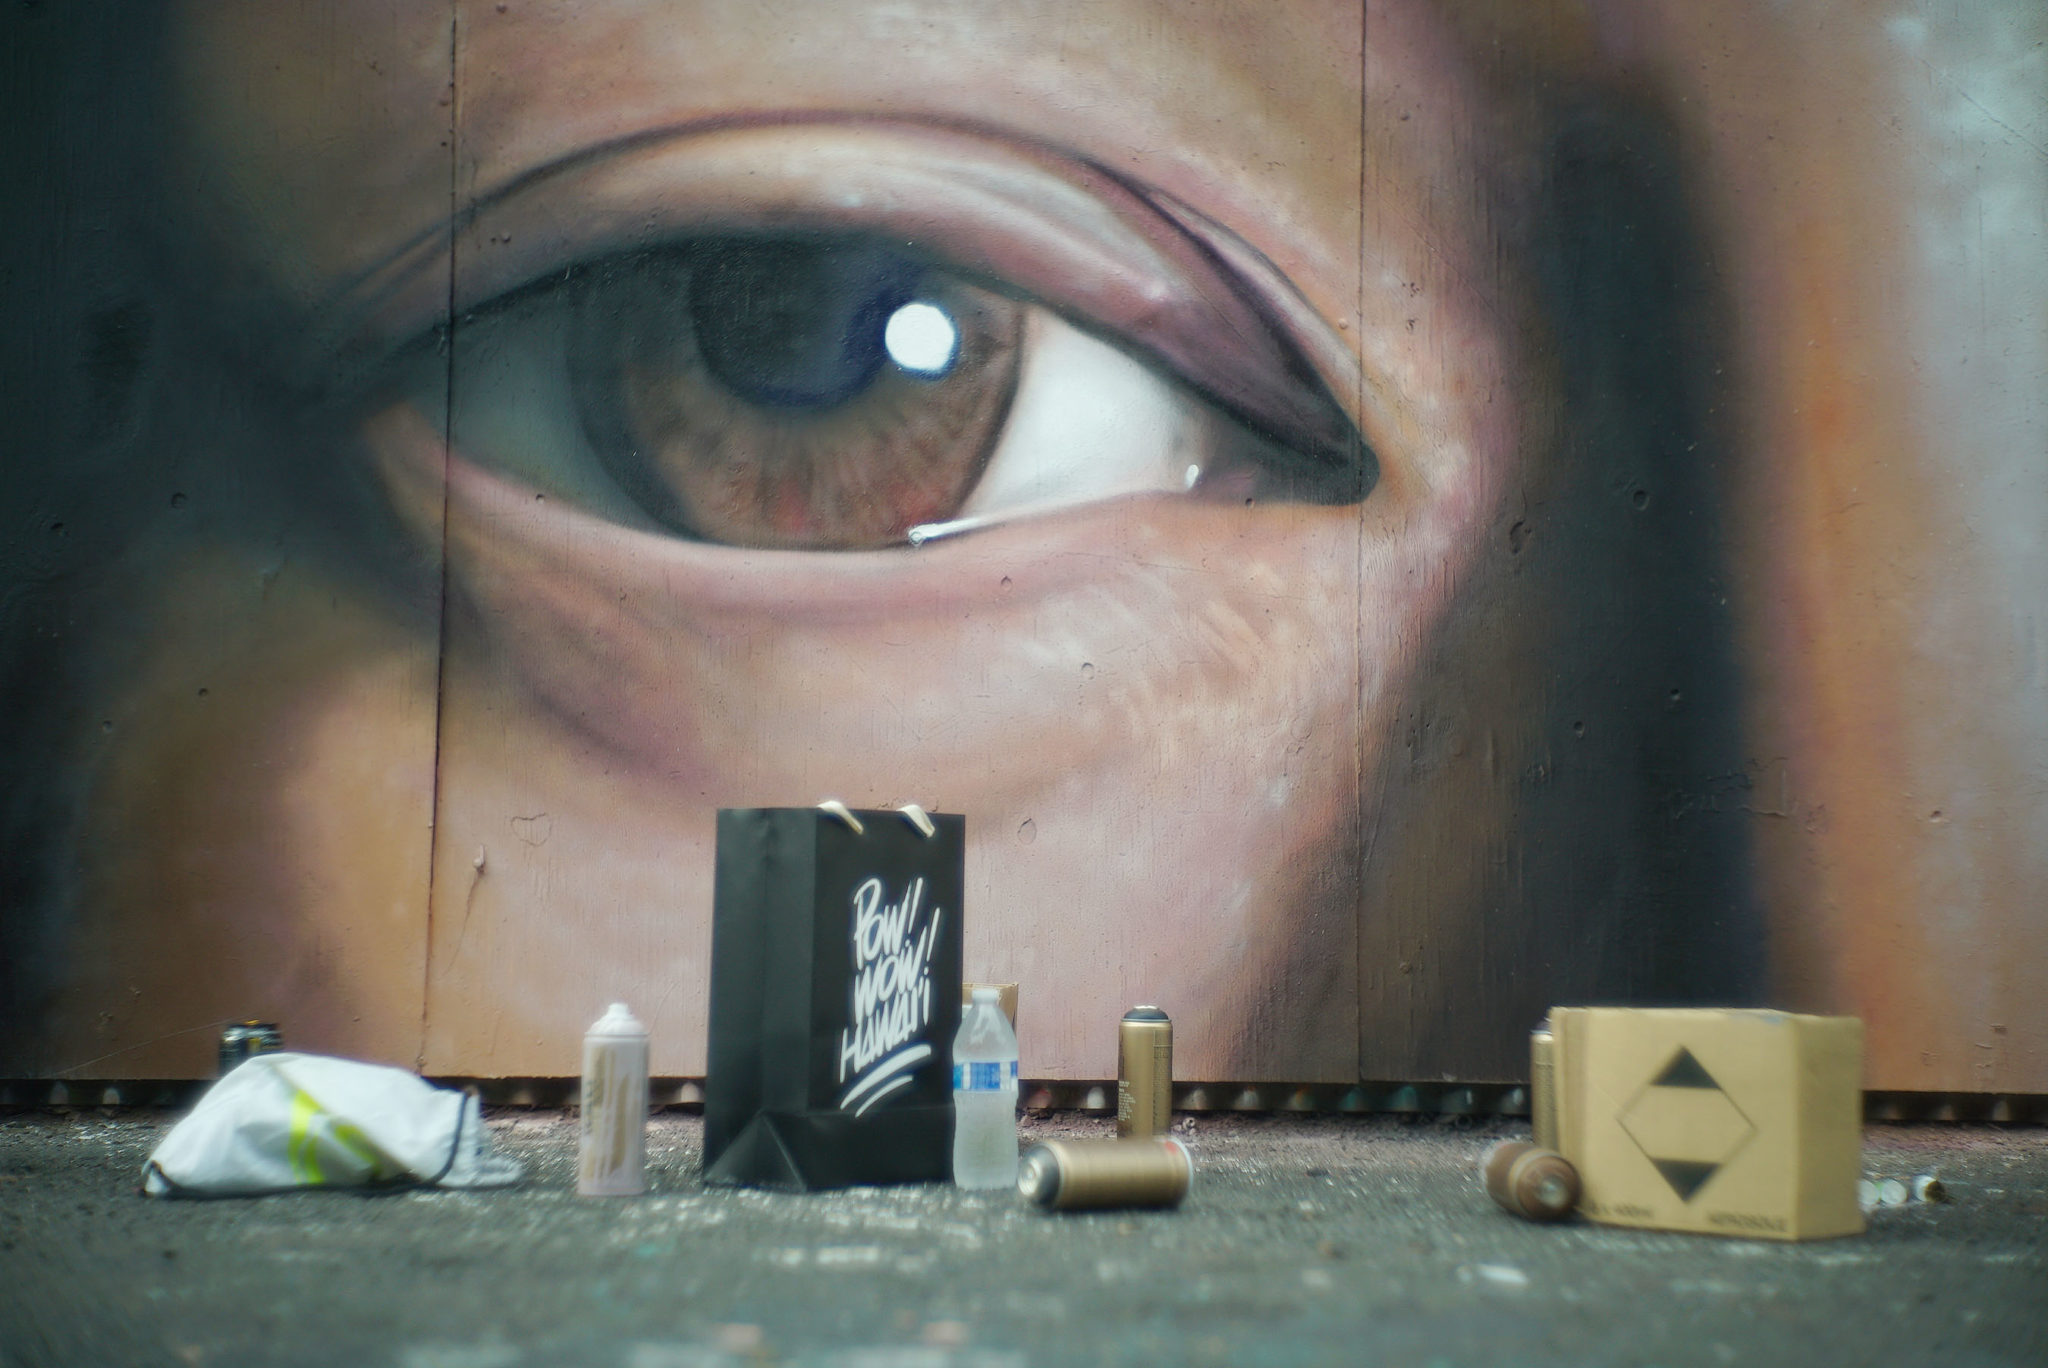 <p>Drew Merritt painted a giant eye for this year's POW!WOW! Hawaii event that continues through Saturday. The street mural festival originated in Hong Kong in 2010, but Hawaii now hosts the flagship event.</p>